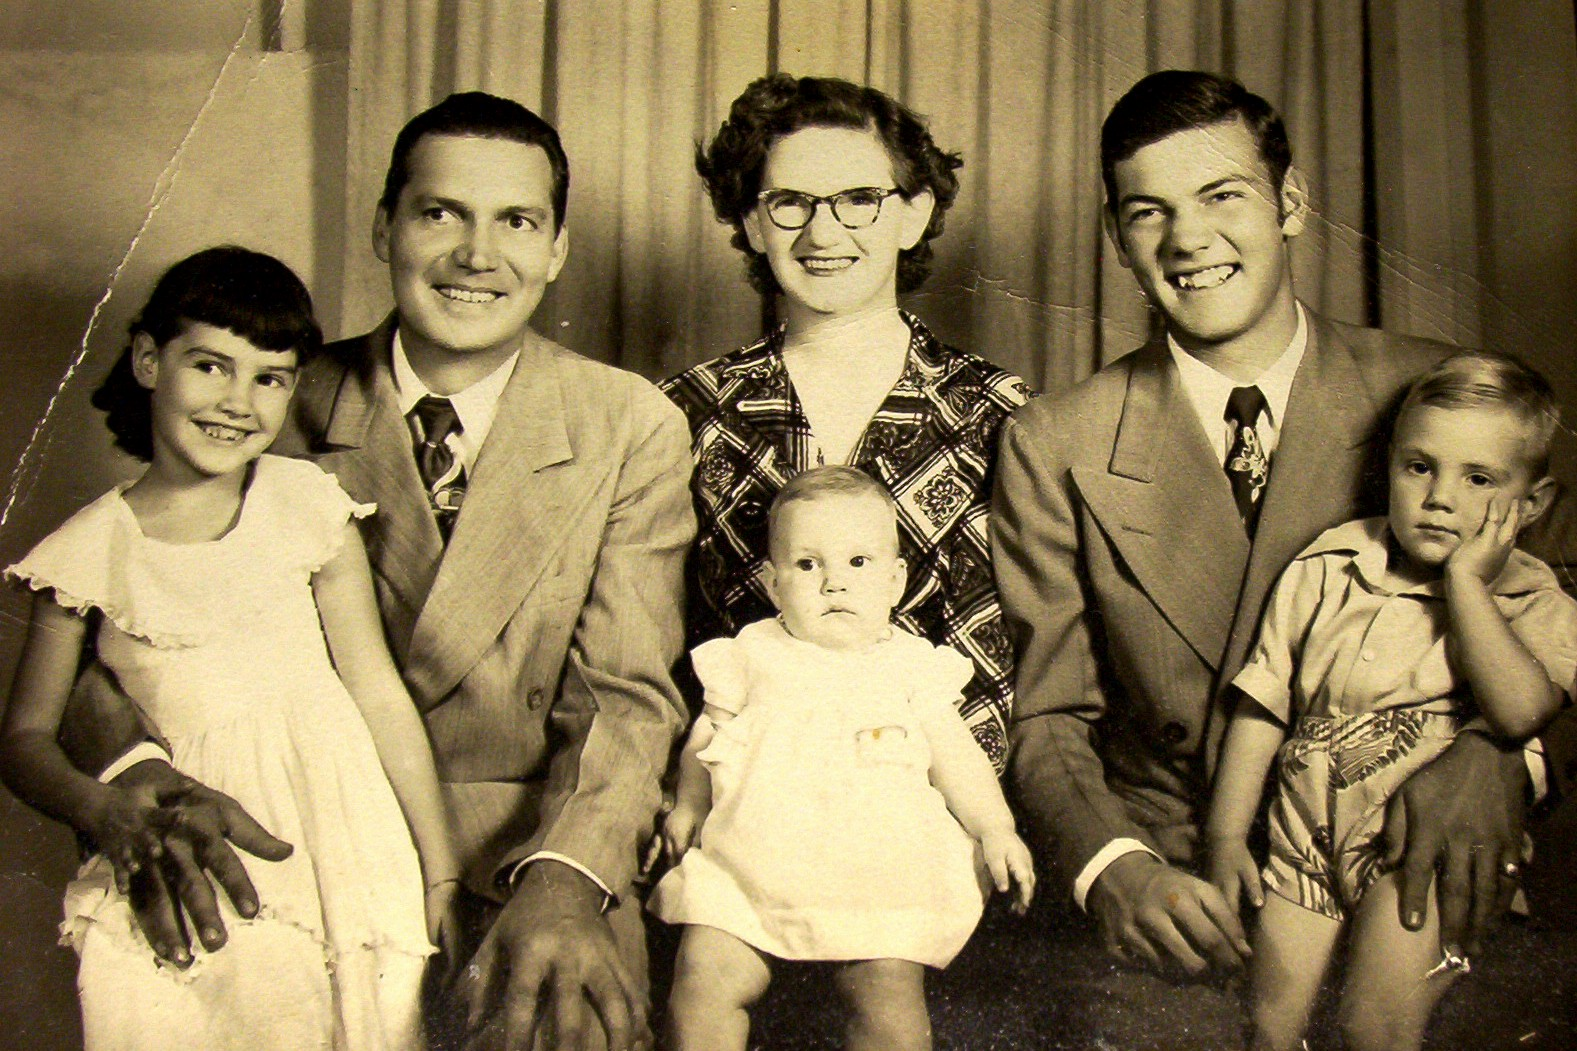 Robert Boyd Family (Dan, 17 years old is on the right)